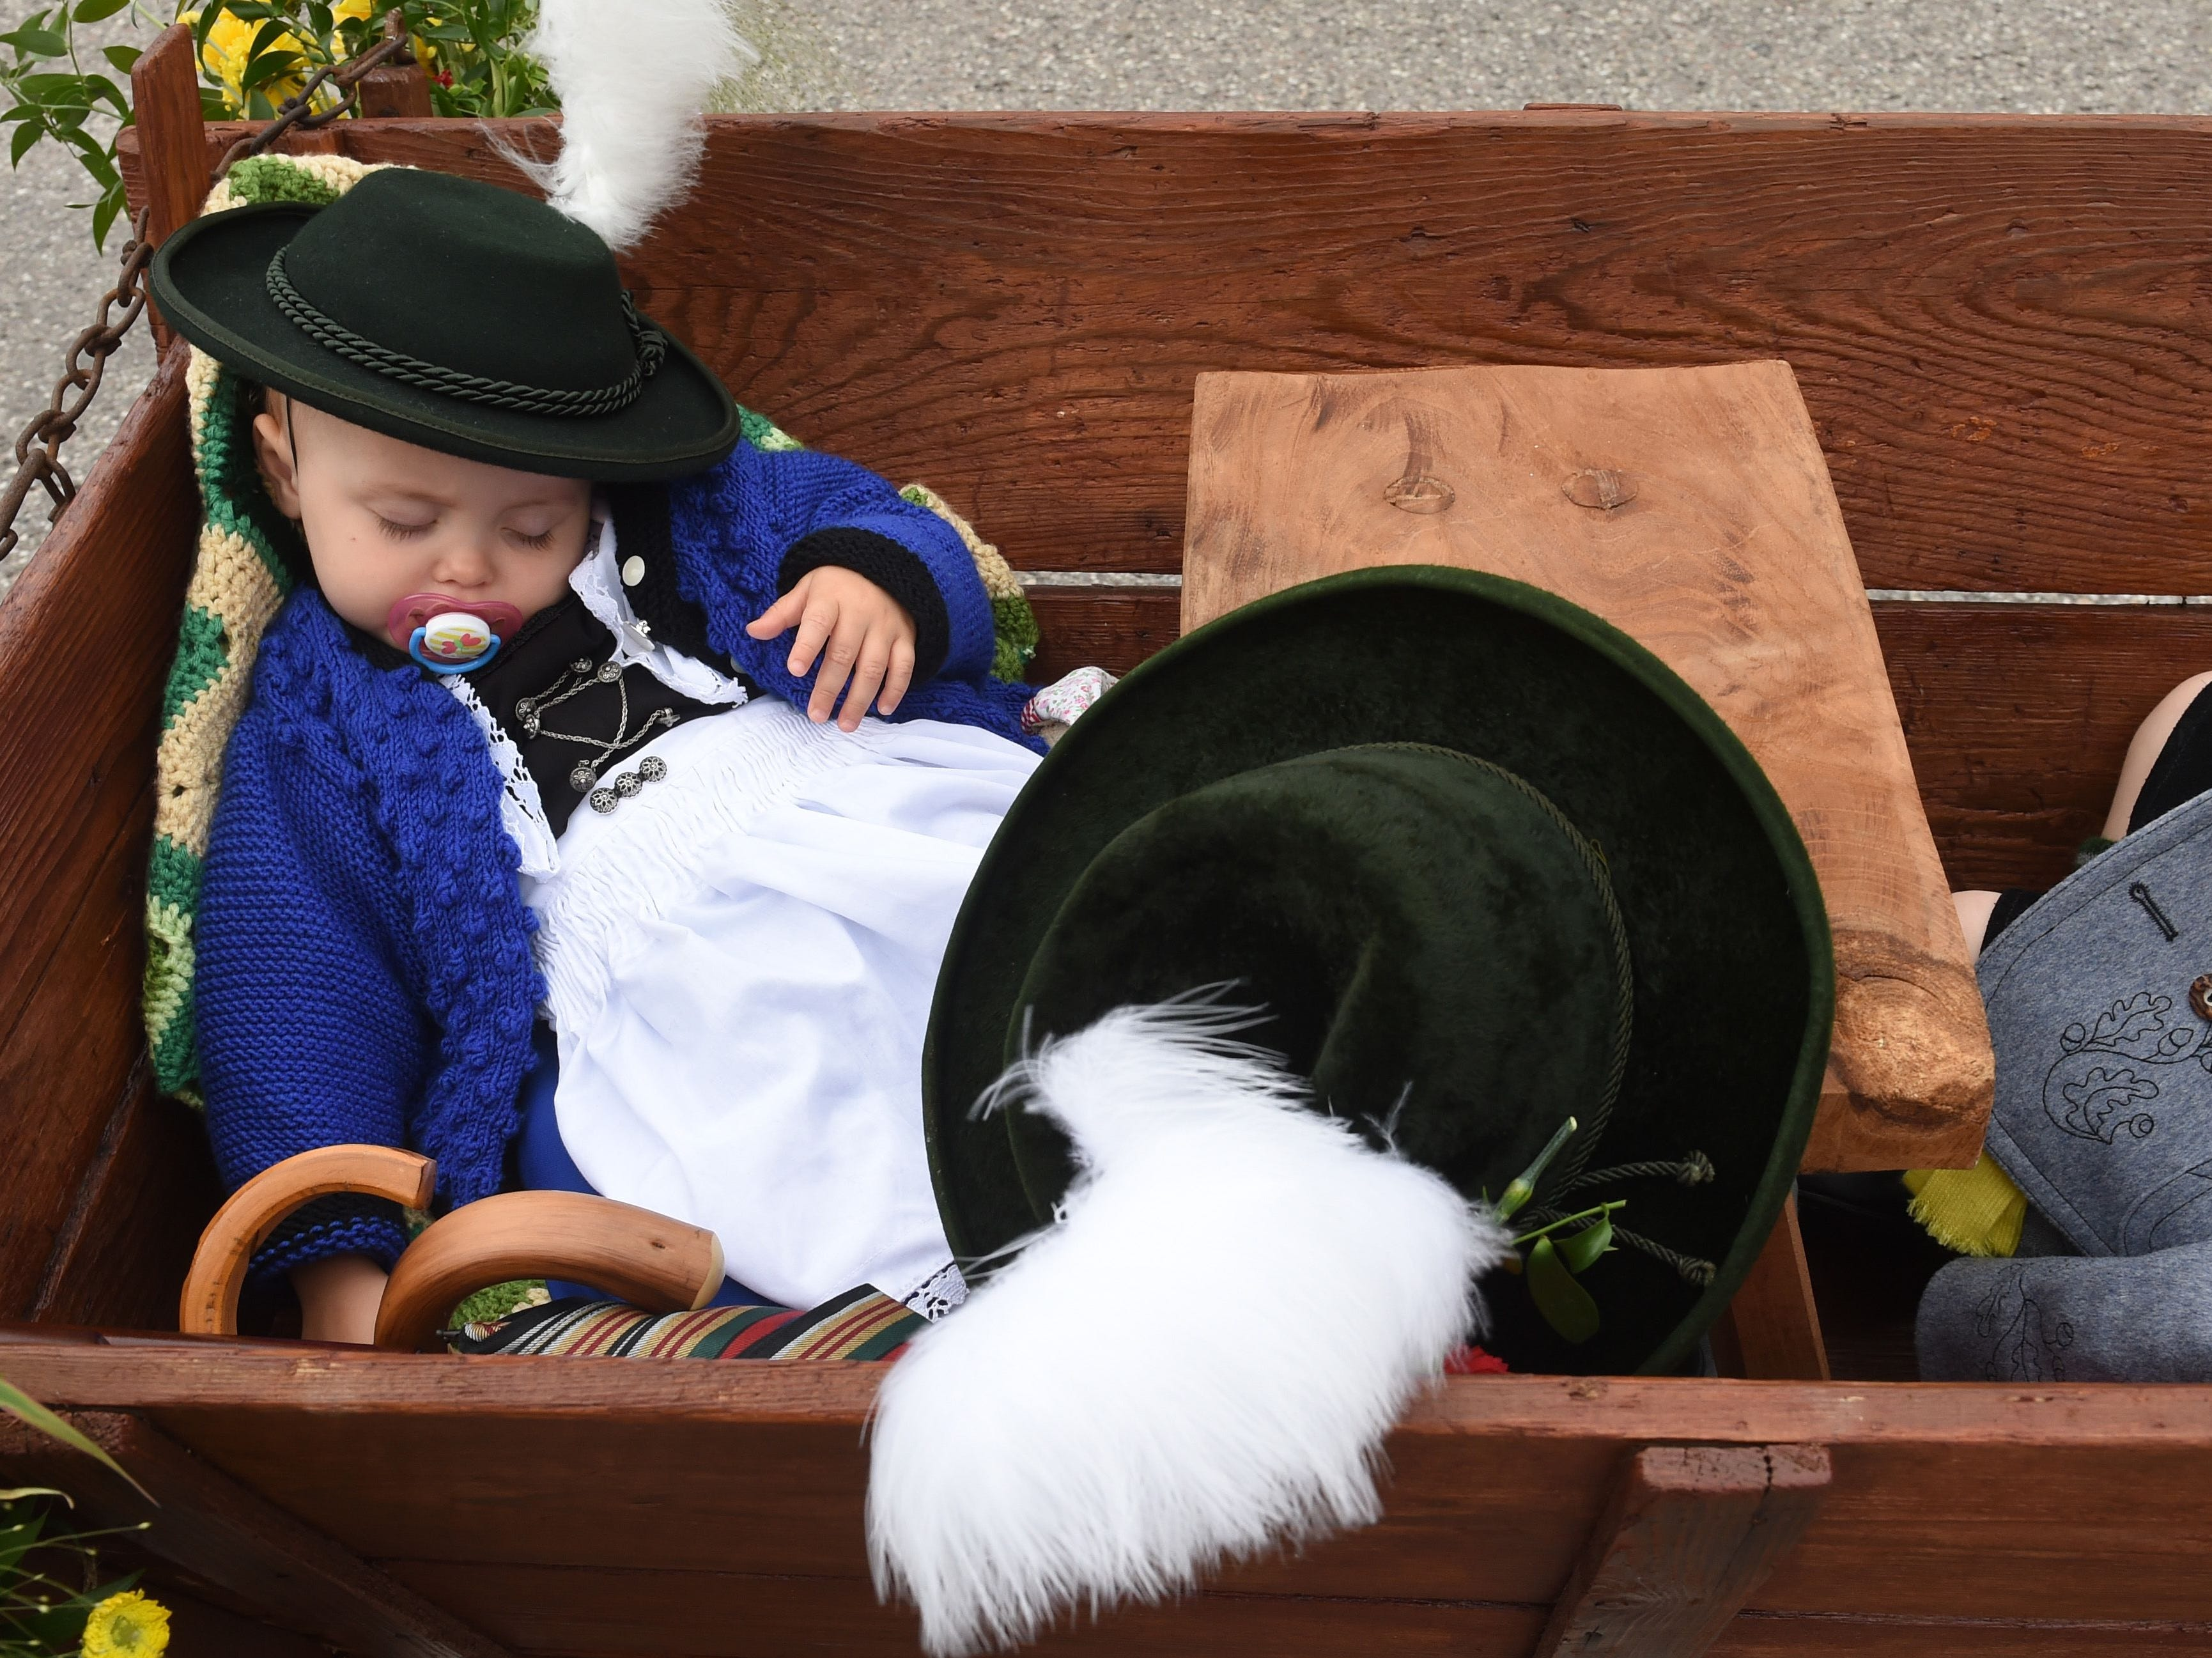 A child sleeps in a cart during the traditional costume and riflemen parade on the second day of the 185th Oktoberfest beer festival on Sept. 23, 2018 in Munich, southern Germany.